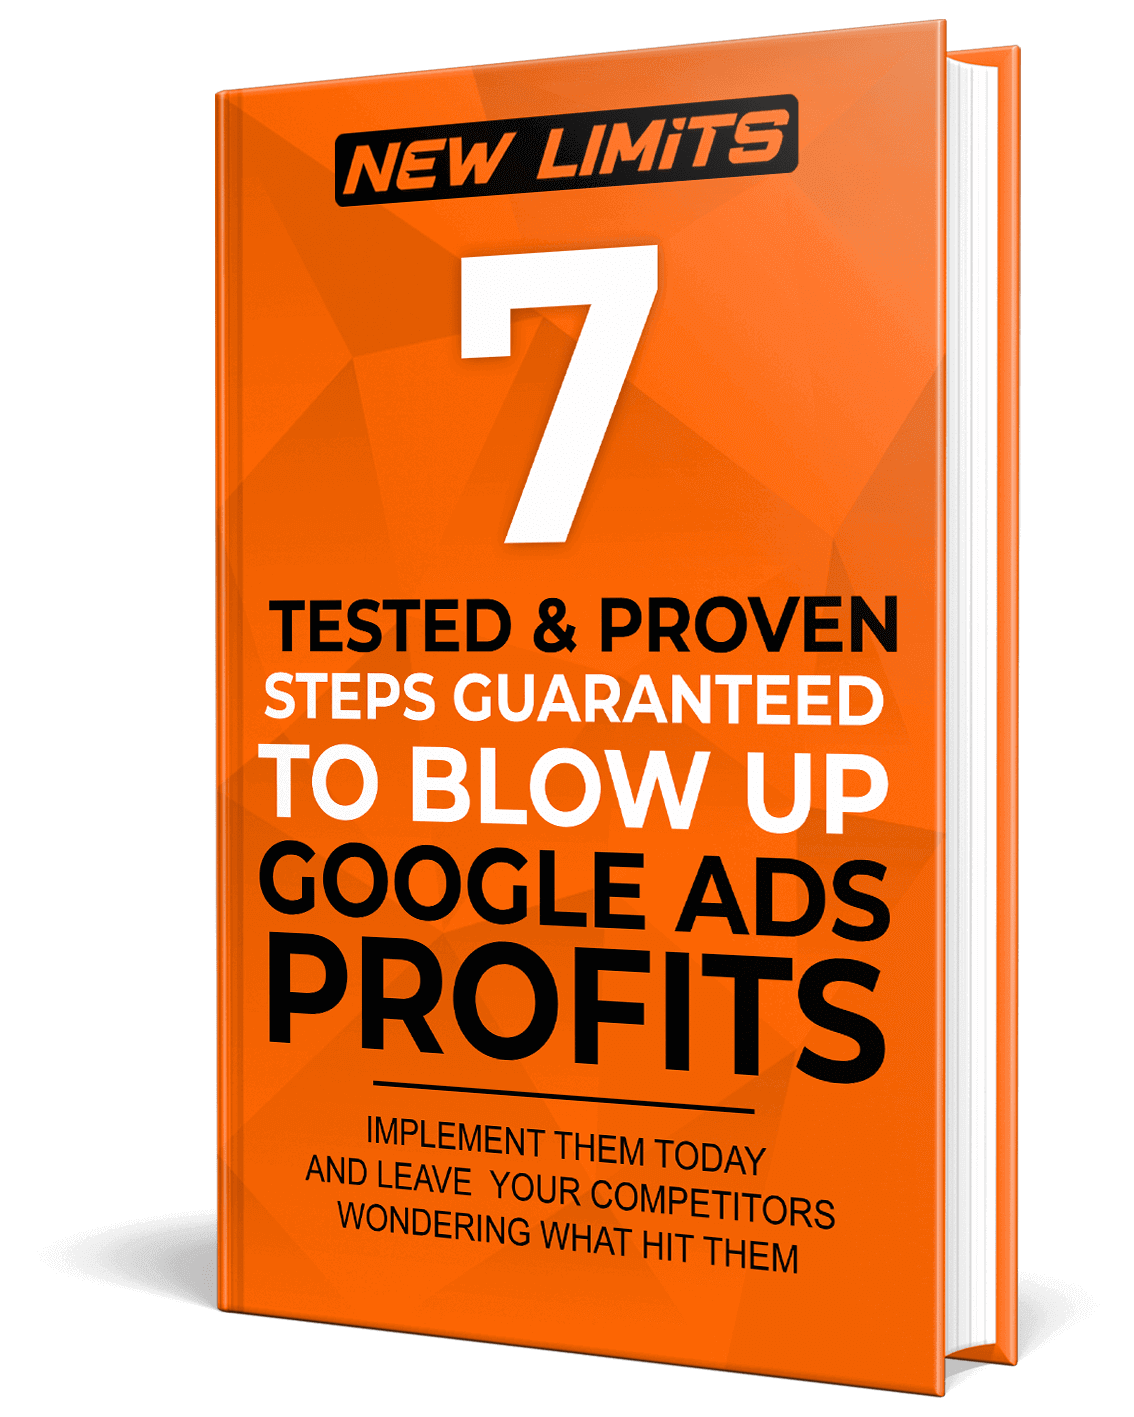 7 Tested & Proven Steps To Double Google Ads Profits - Waheed Dhedhi - New Limits